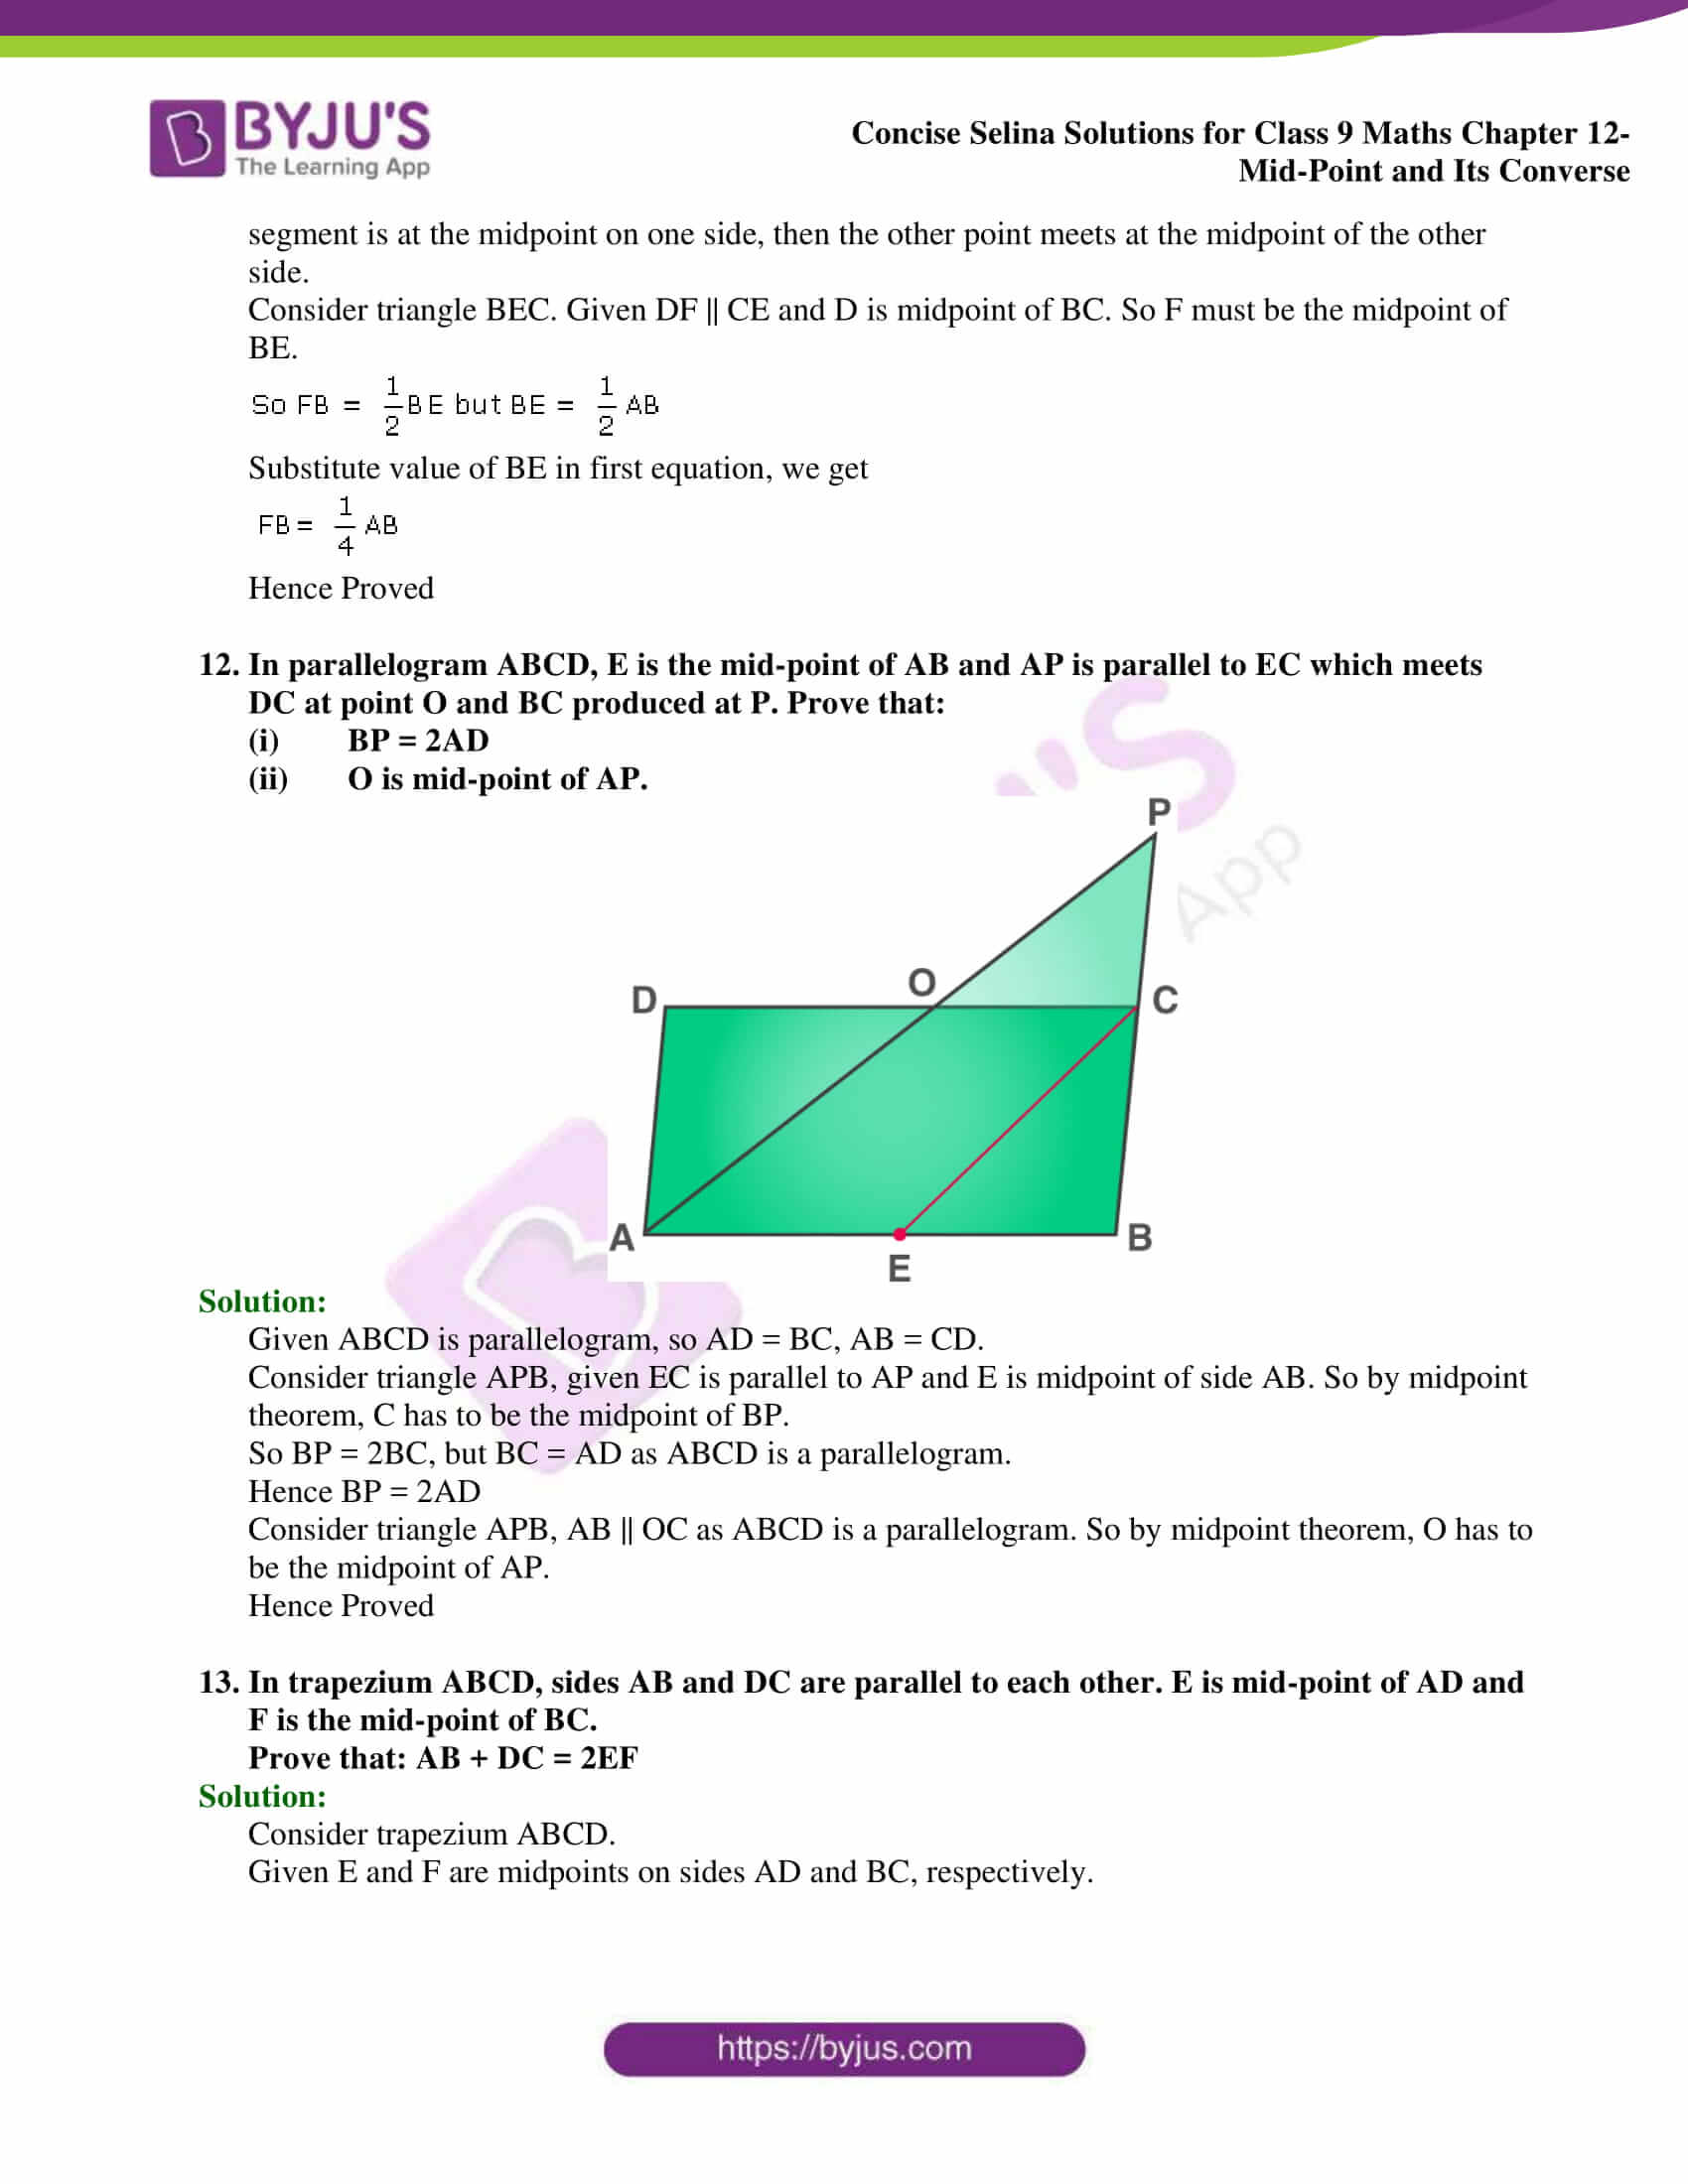 selina Solutions for Class 9 Maths Chapter 12 part 20